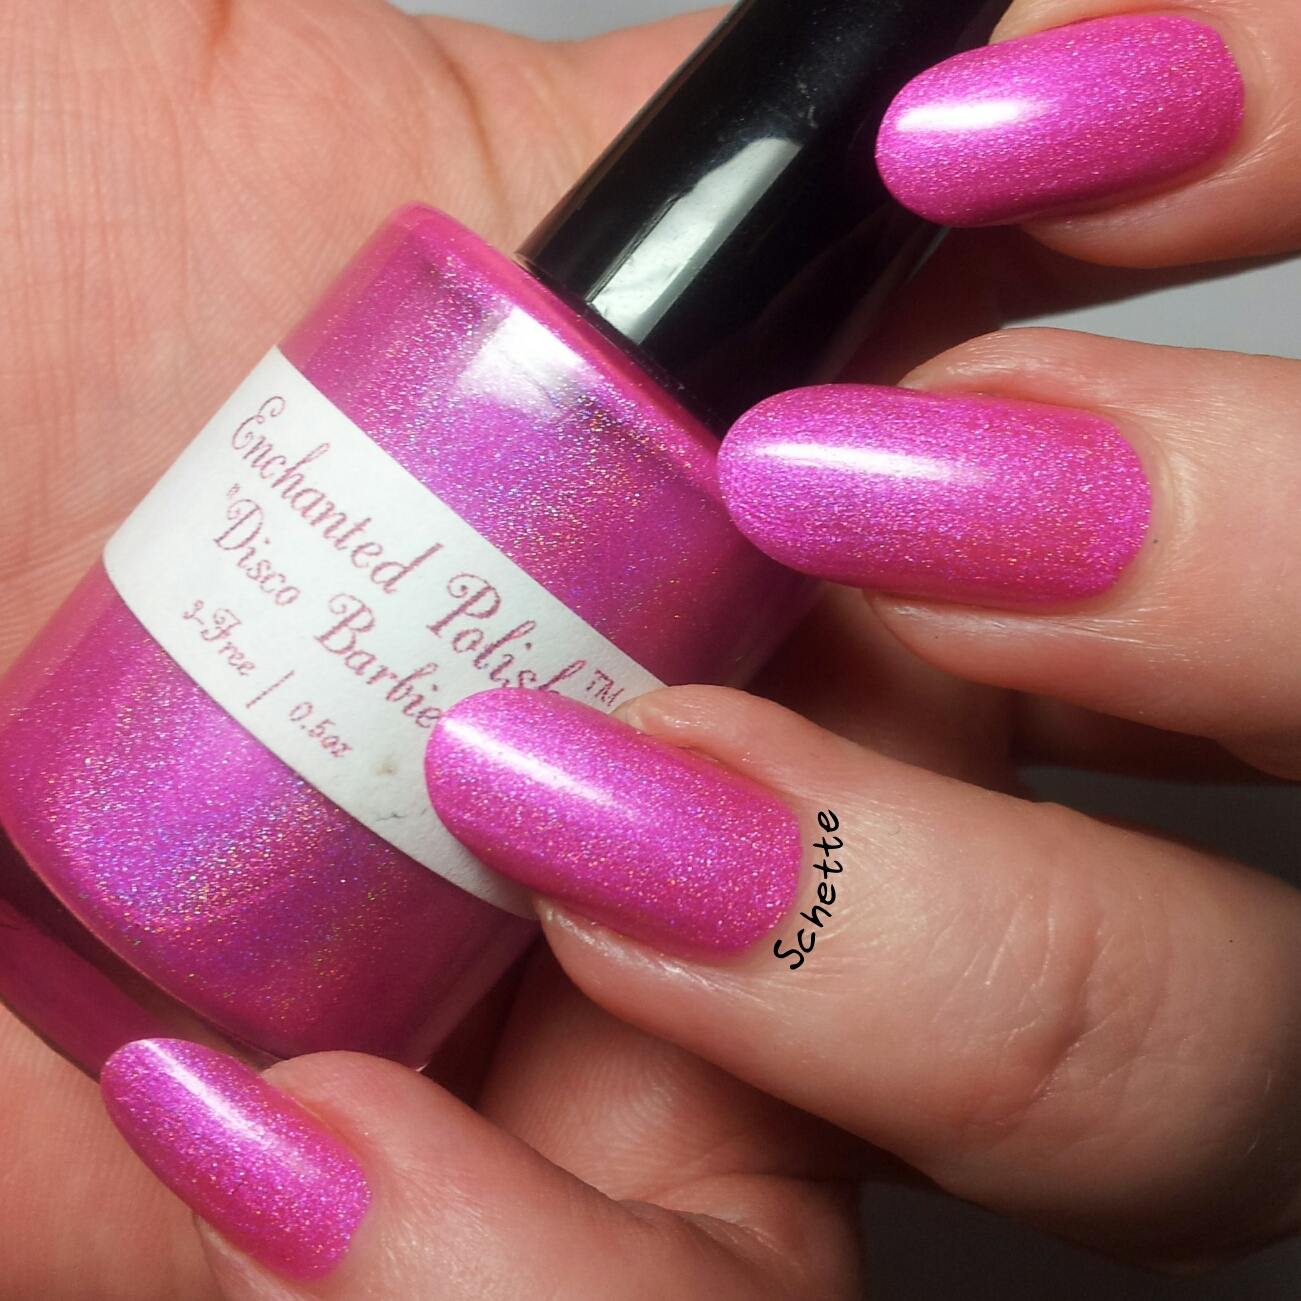 Le vernis Enchanted Polish - Disco Babie - Comparaison old / new